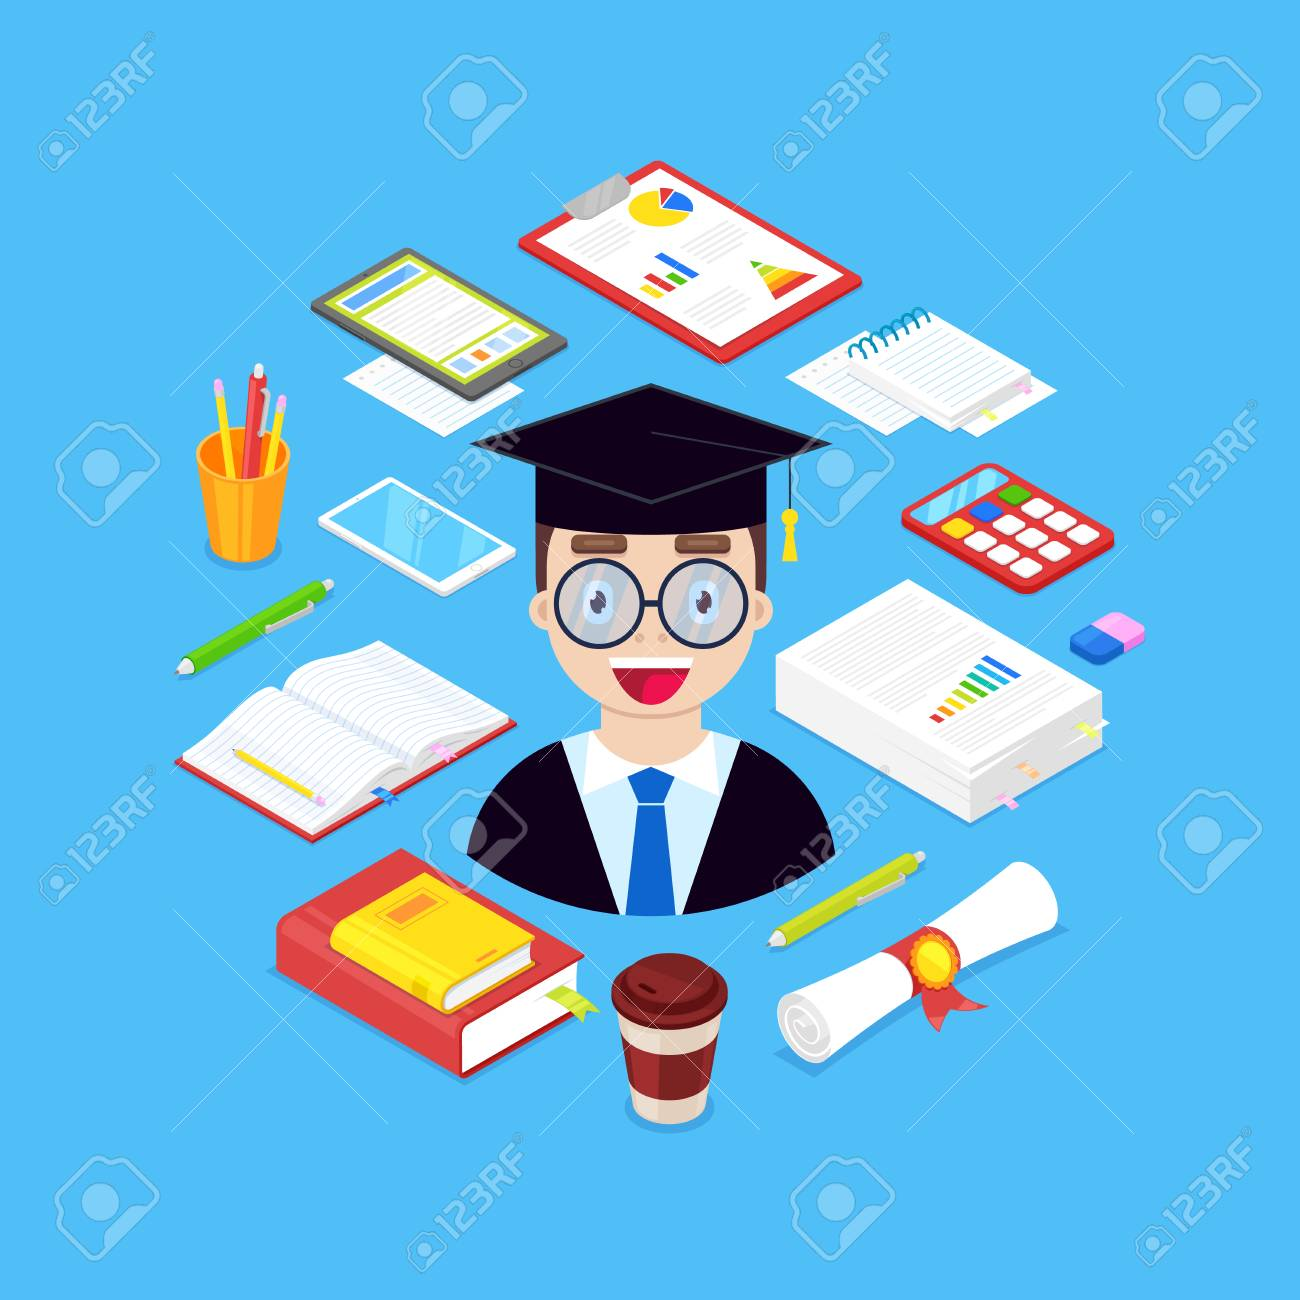 Happy scientist with stationary ,books, pen,pencil,calculator on blue background. - 127234910